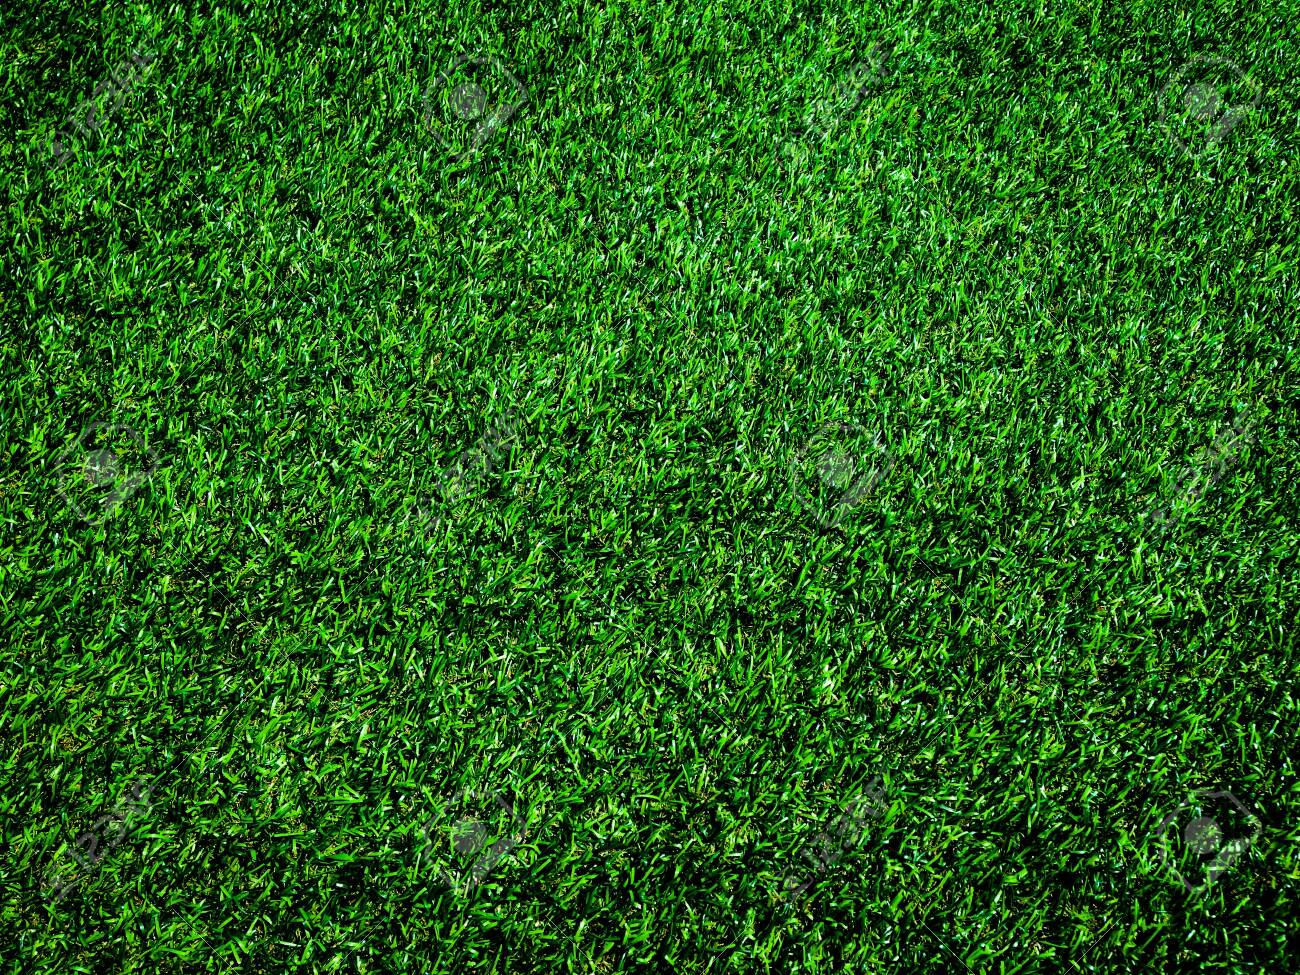 Top view of green grass texture background. Element of design. - 139926463